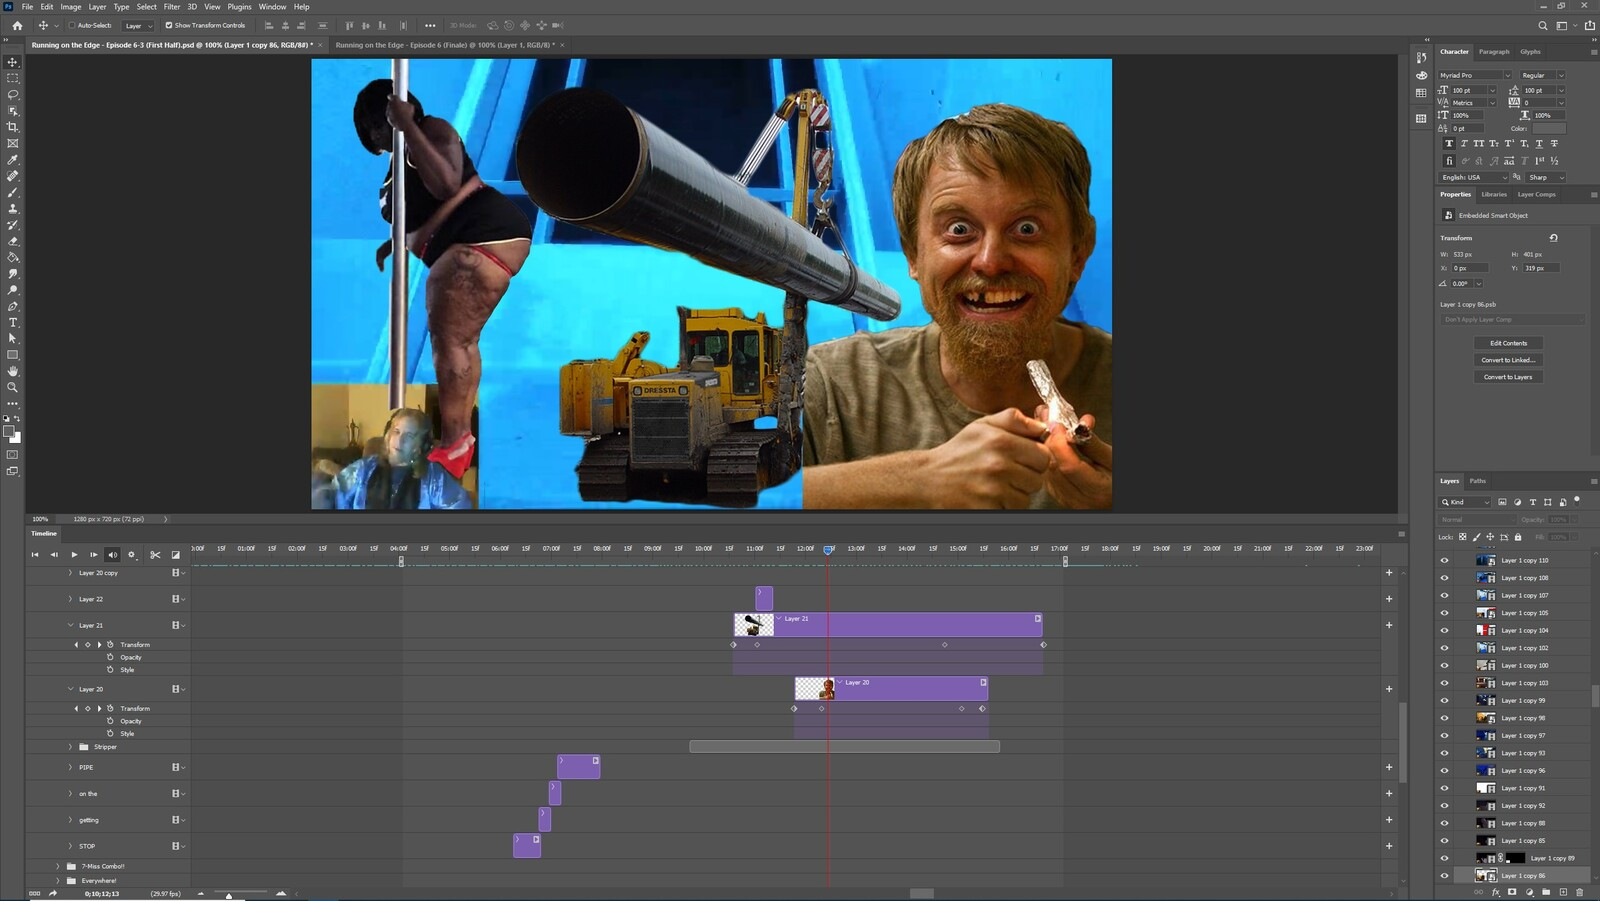 """The """"Get Off the Pipe"""" visual effect within Photoshop video editor"""